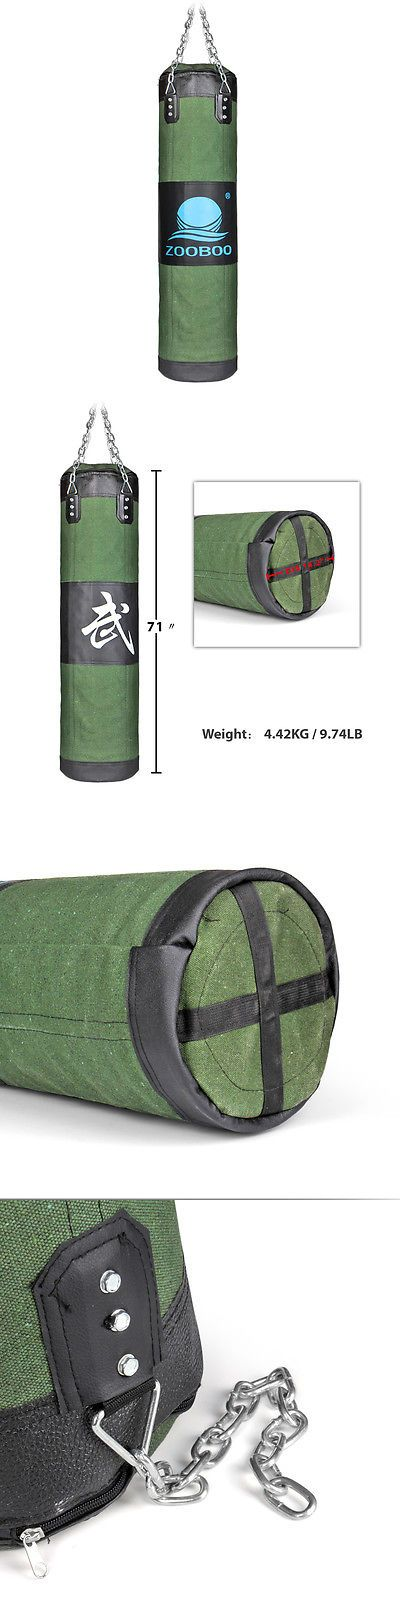 Punching Bags 30101: 71 Heavy Punching Bag Mma Boxing Workout Training Gear With Chain (Empty) BUY IT NOW ONLY: $46.63